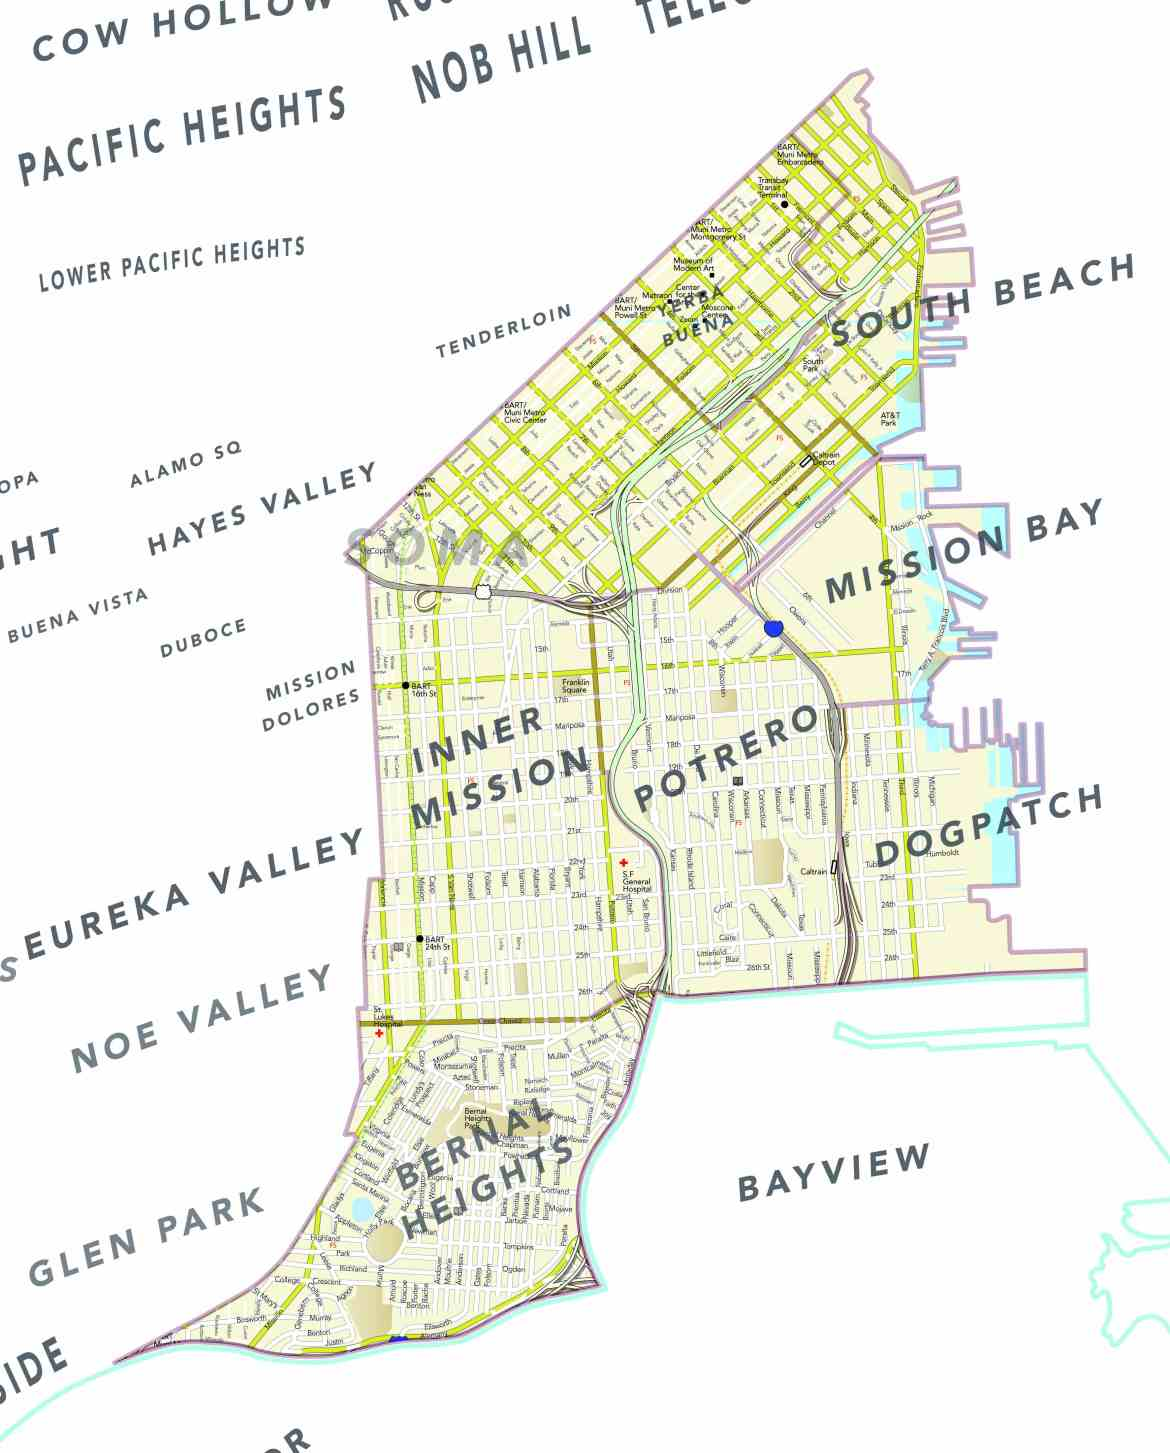 District 9: The Eastern Half of the City